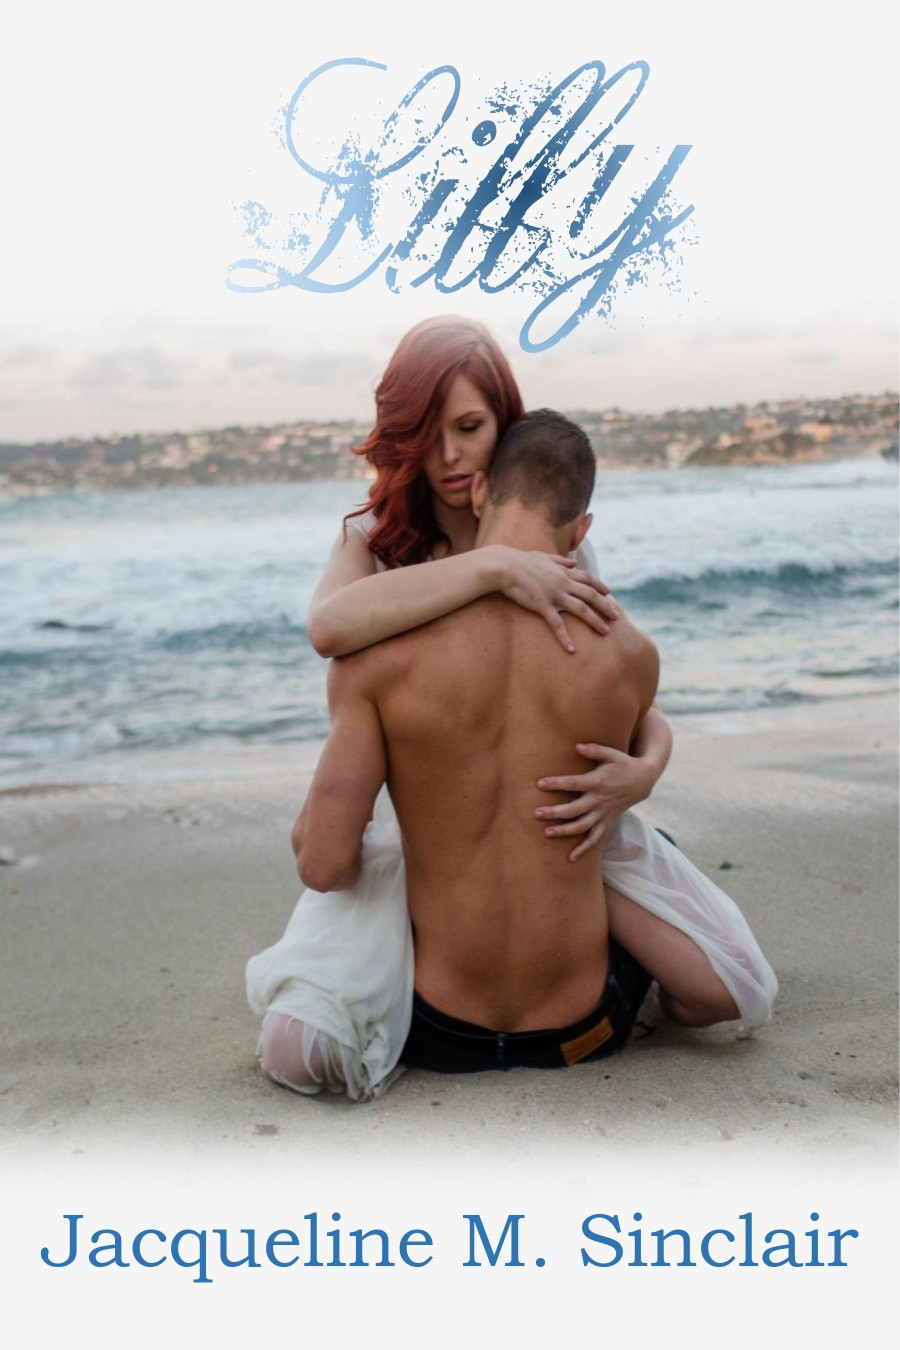 lilly_cover